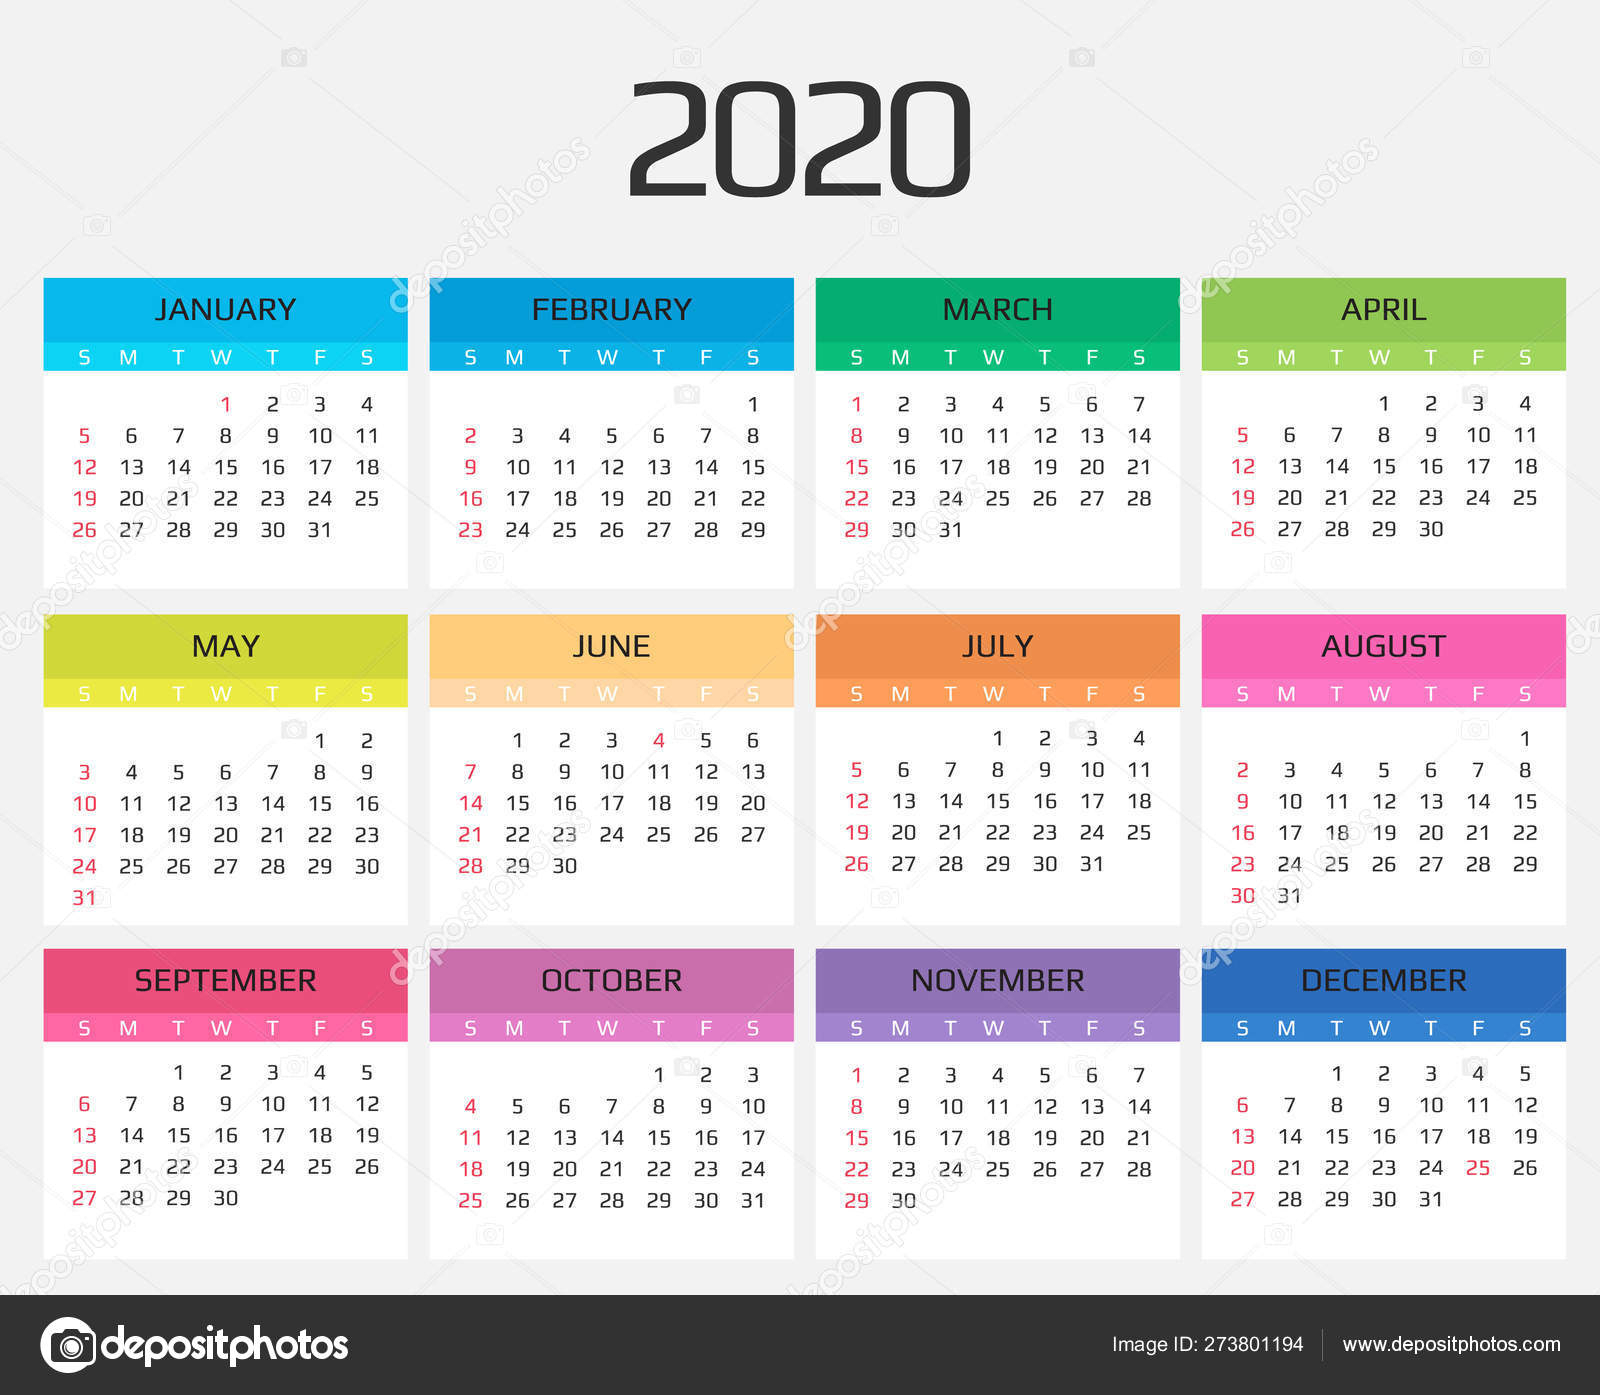 Calendario 2020 Plantilla. 12 Meses. Incluyen Un Evento in Calendario 2020 Con Semanas